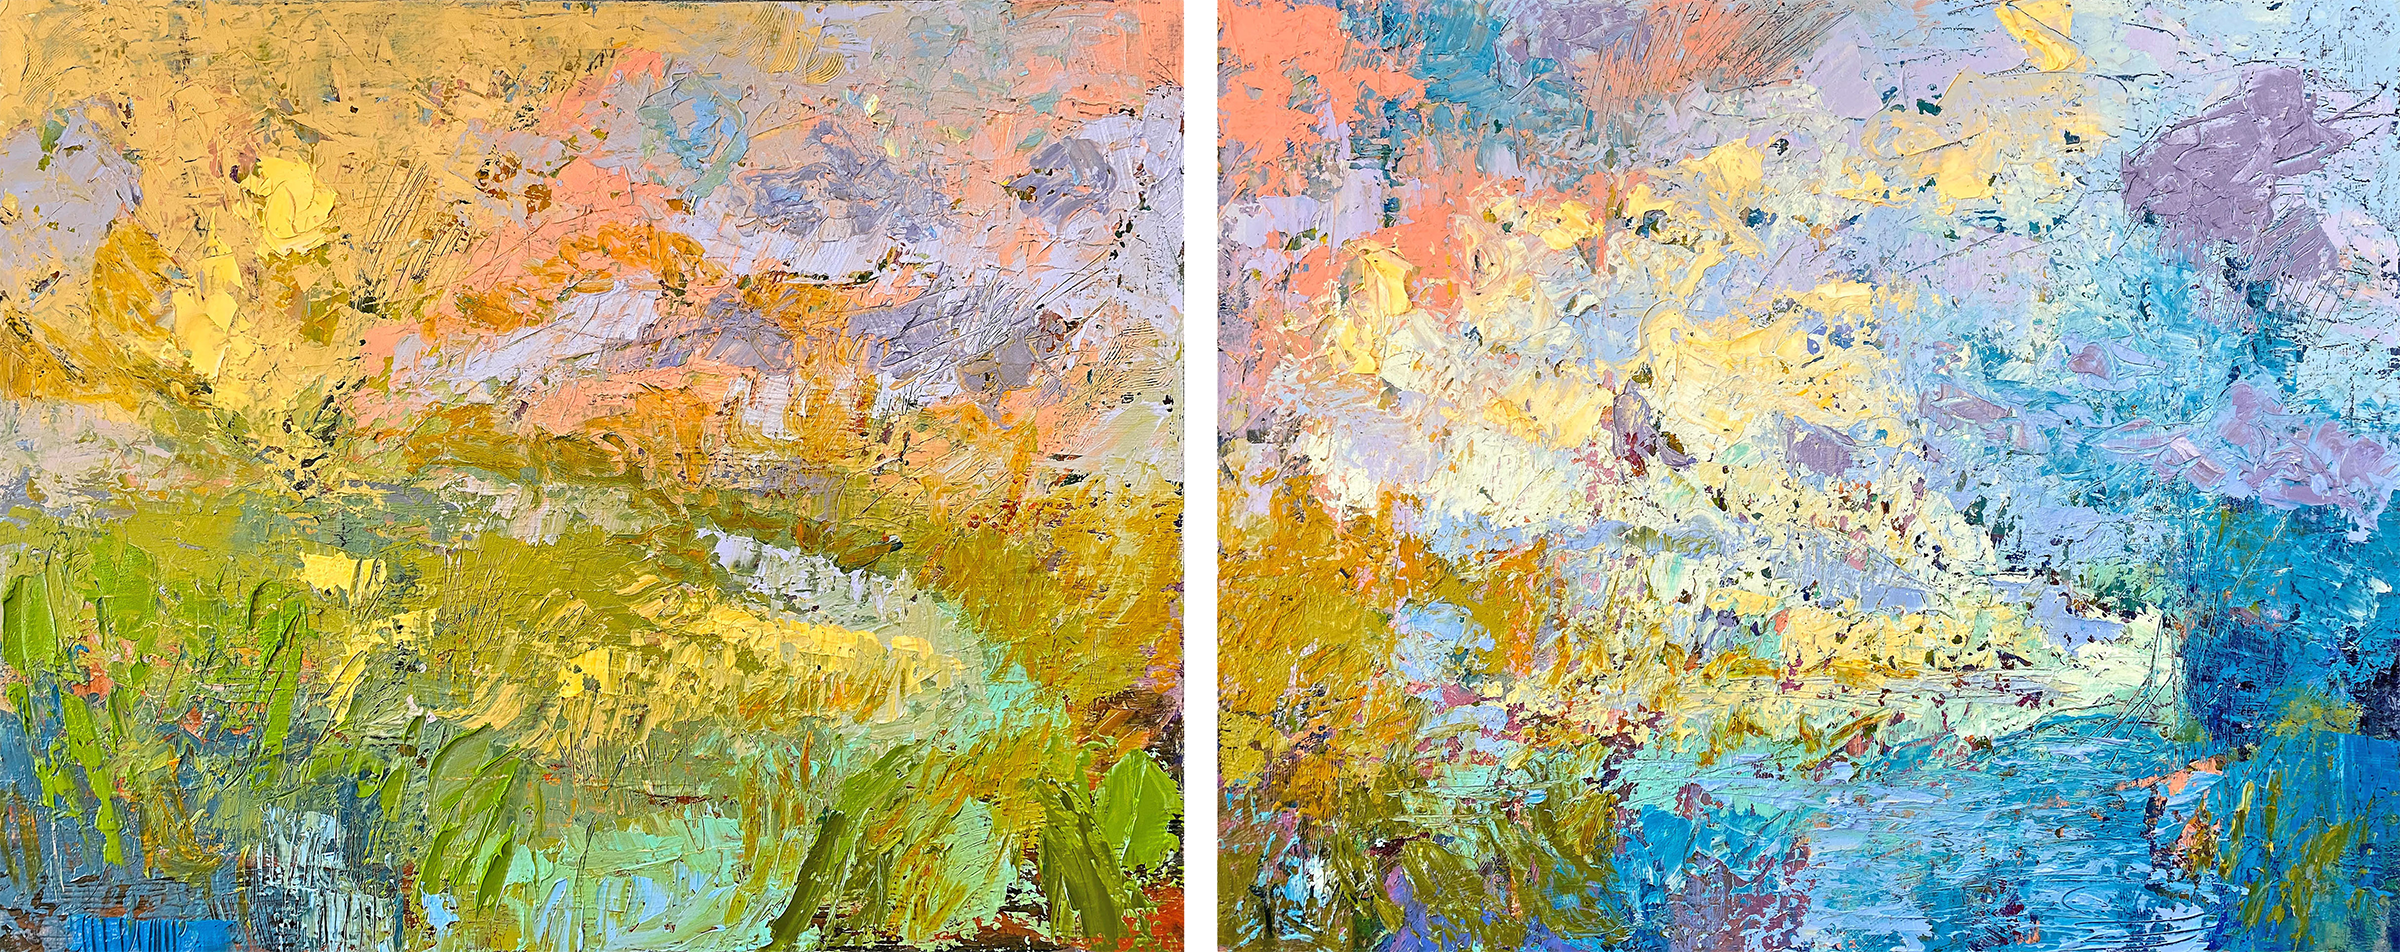 Sing me a song  let twilight be diptych 2400 vr1nqf